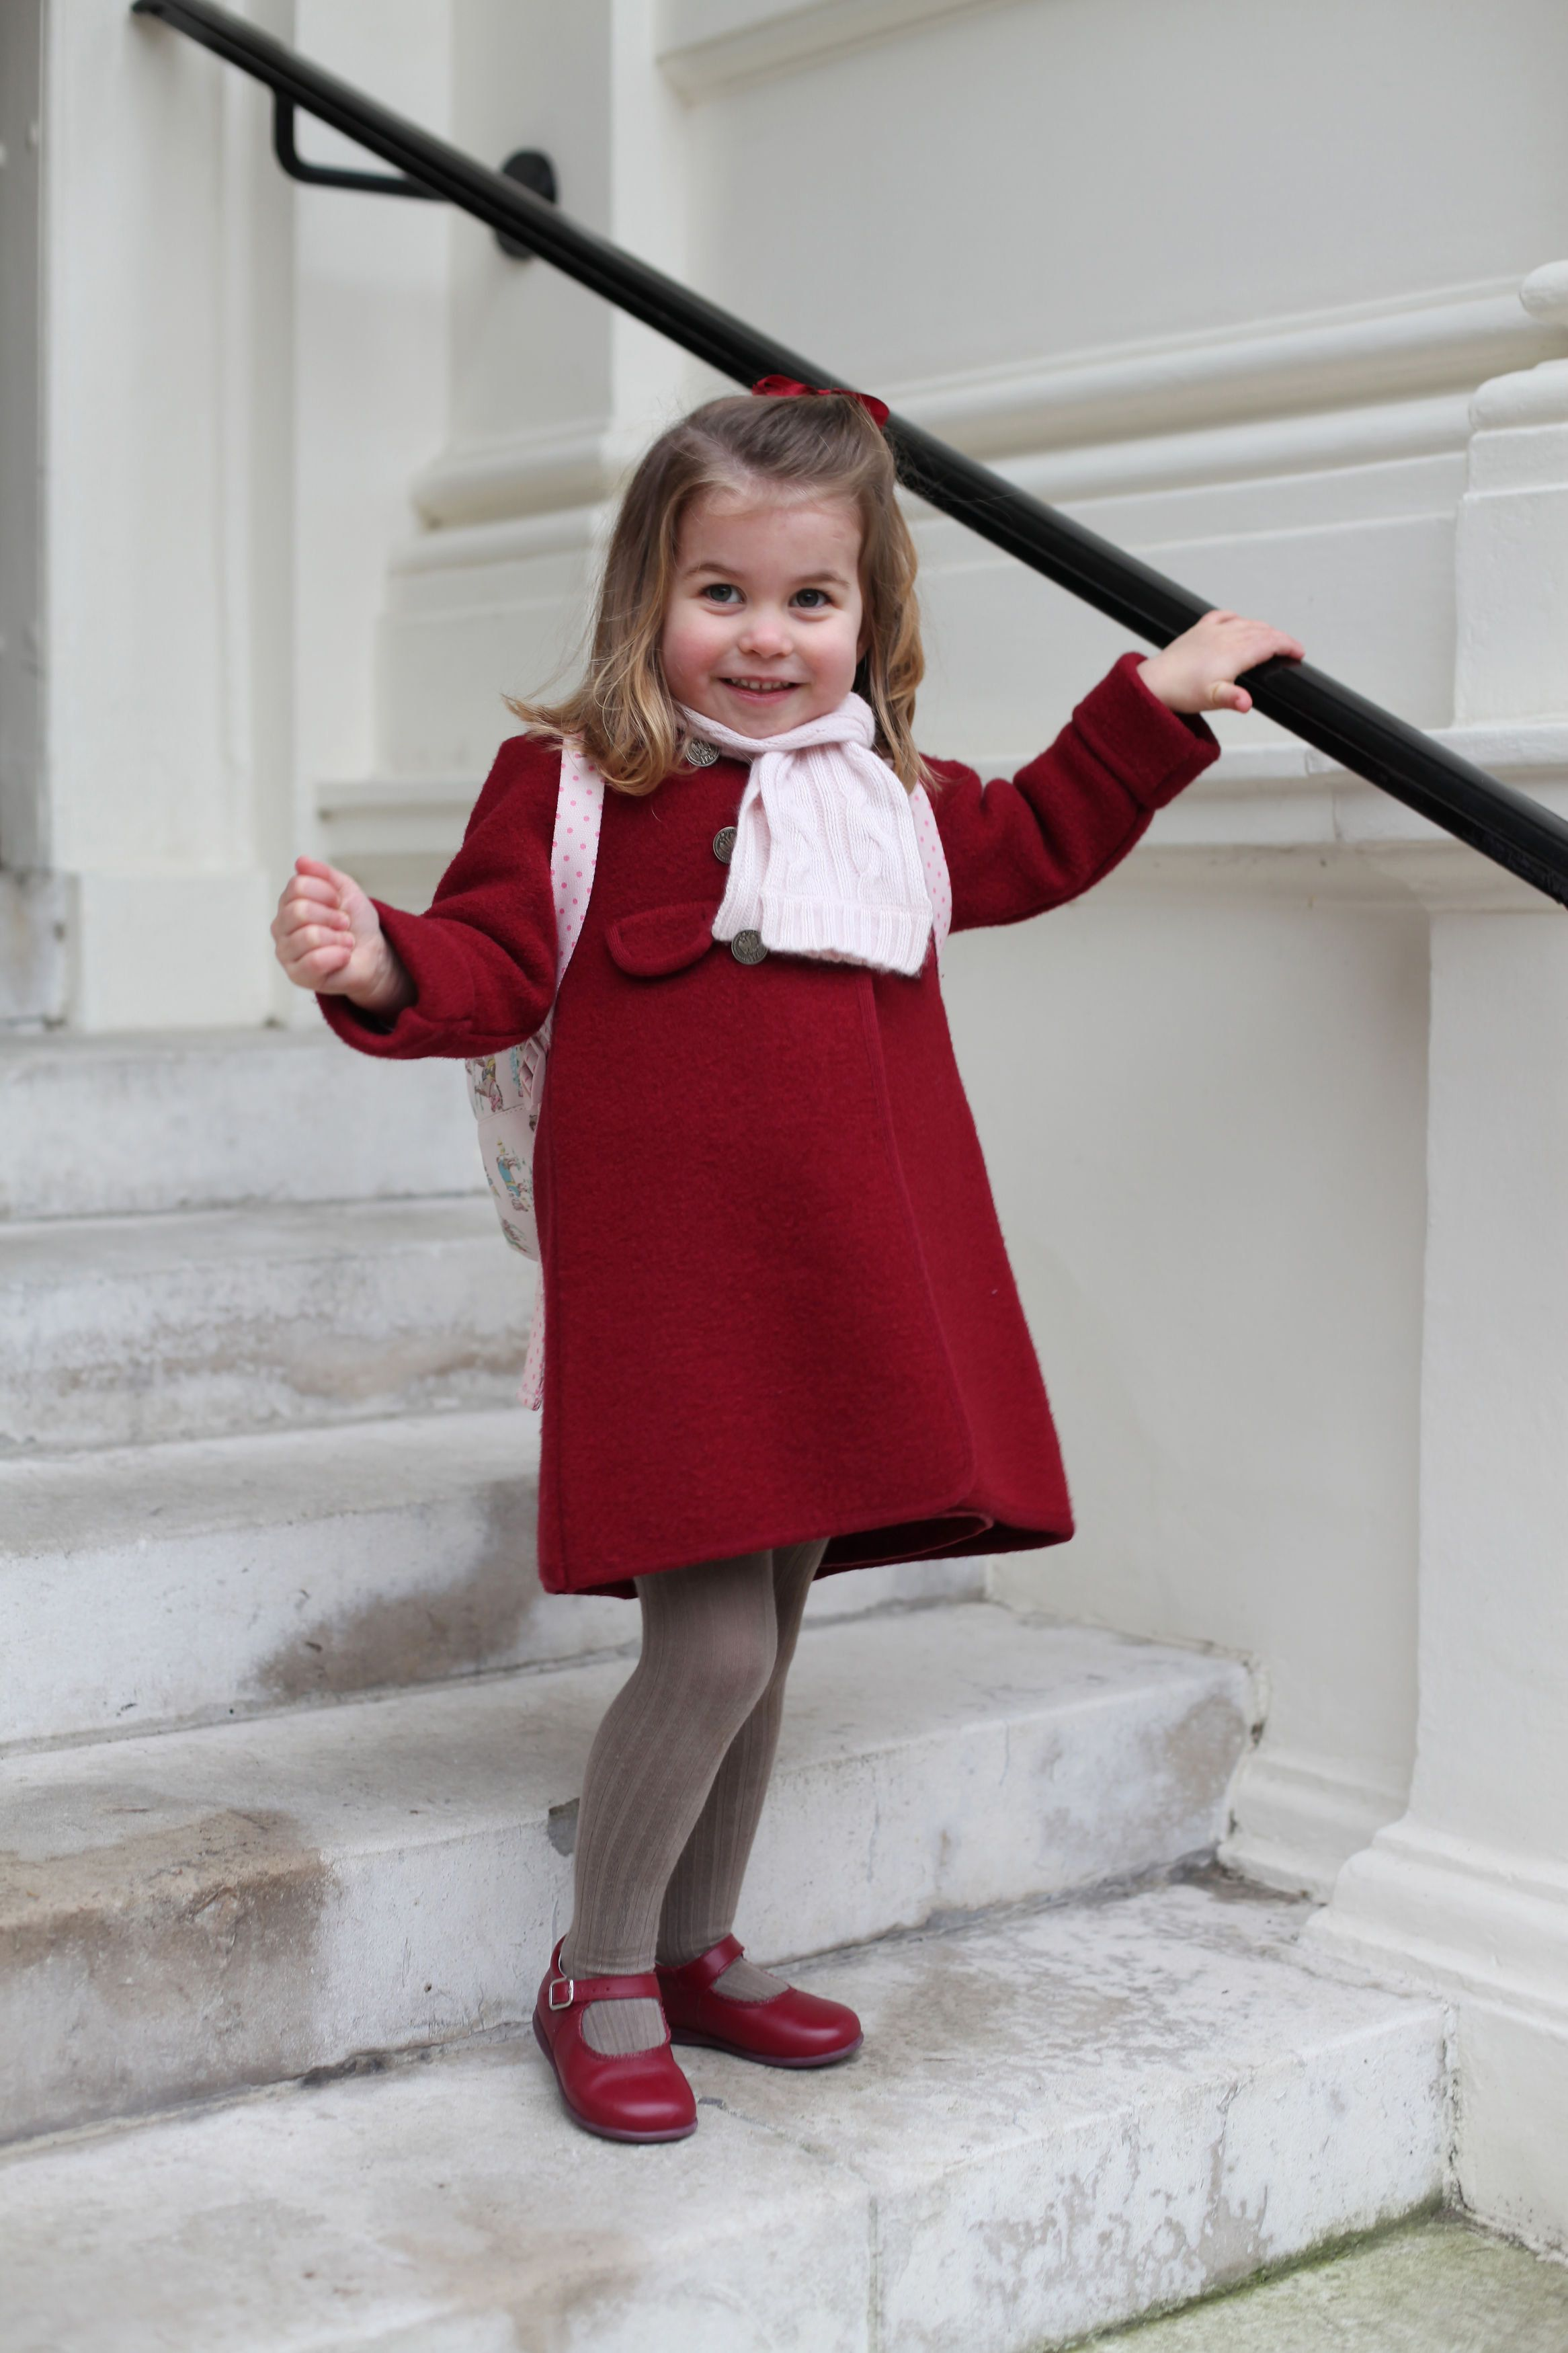 Princess Charlotte Loves Dancing, Duke Of Cambridge